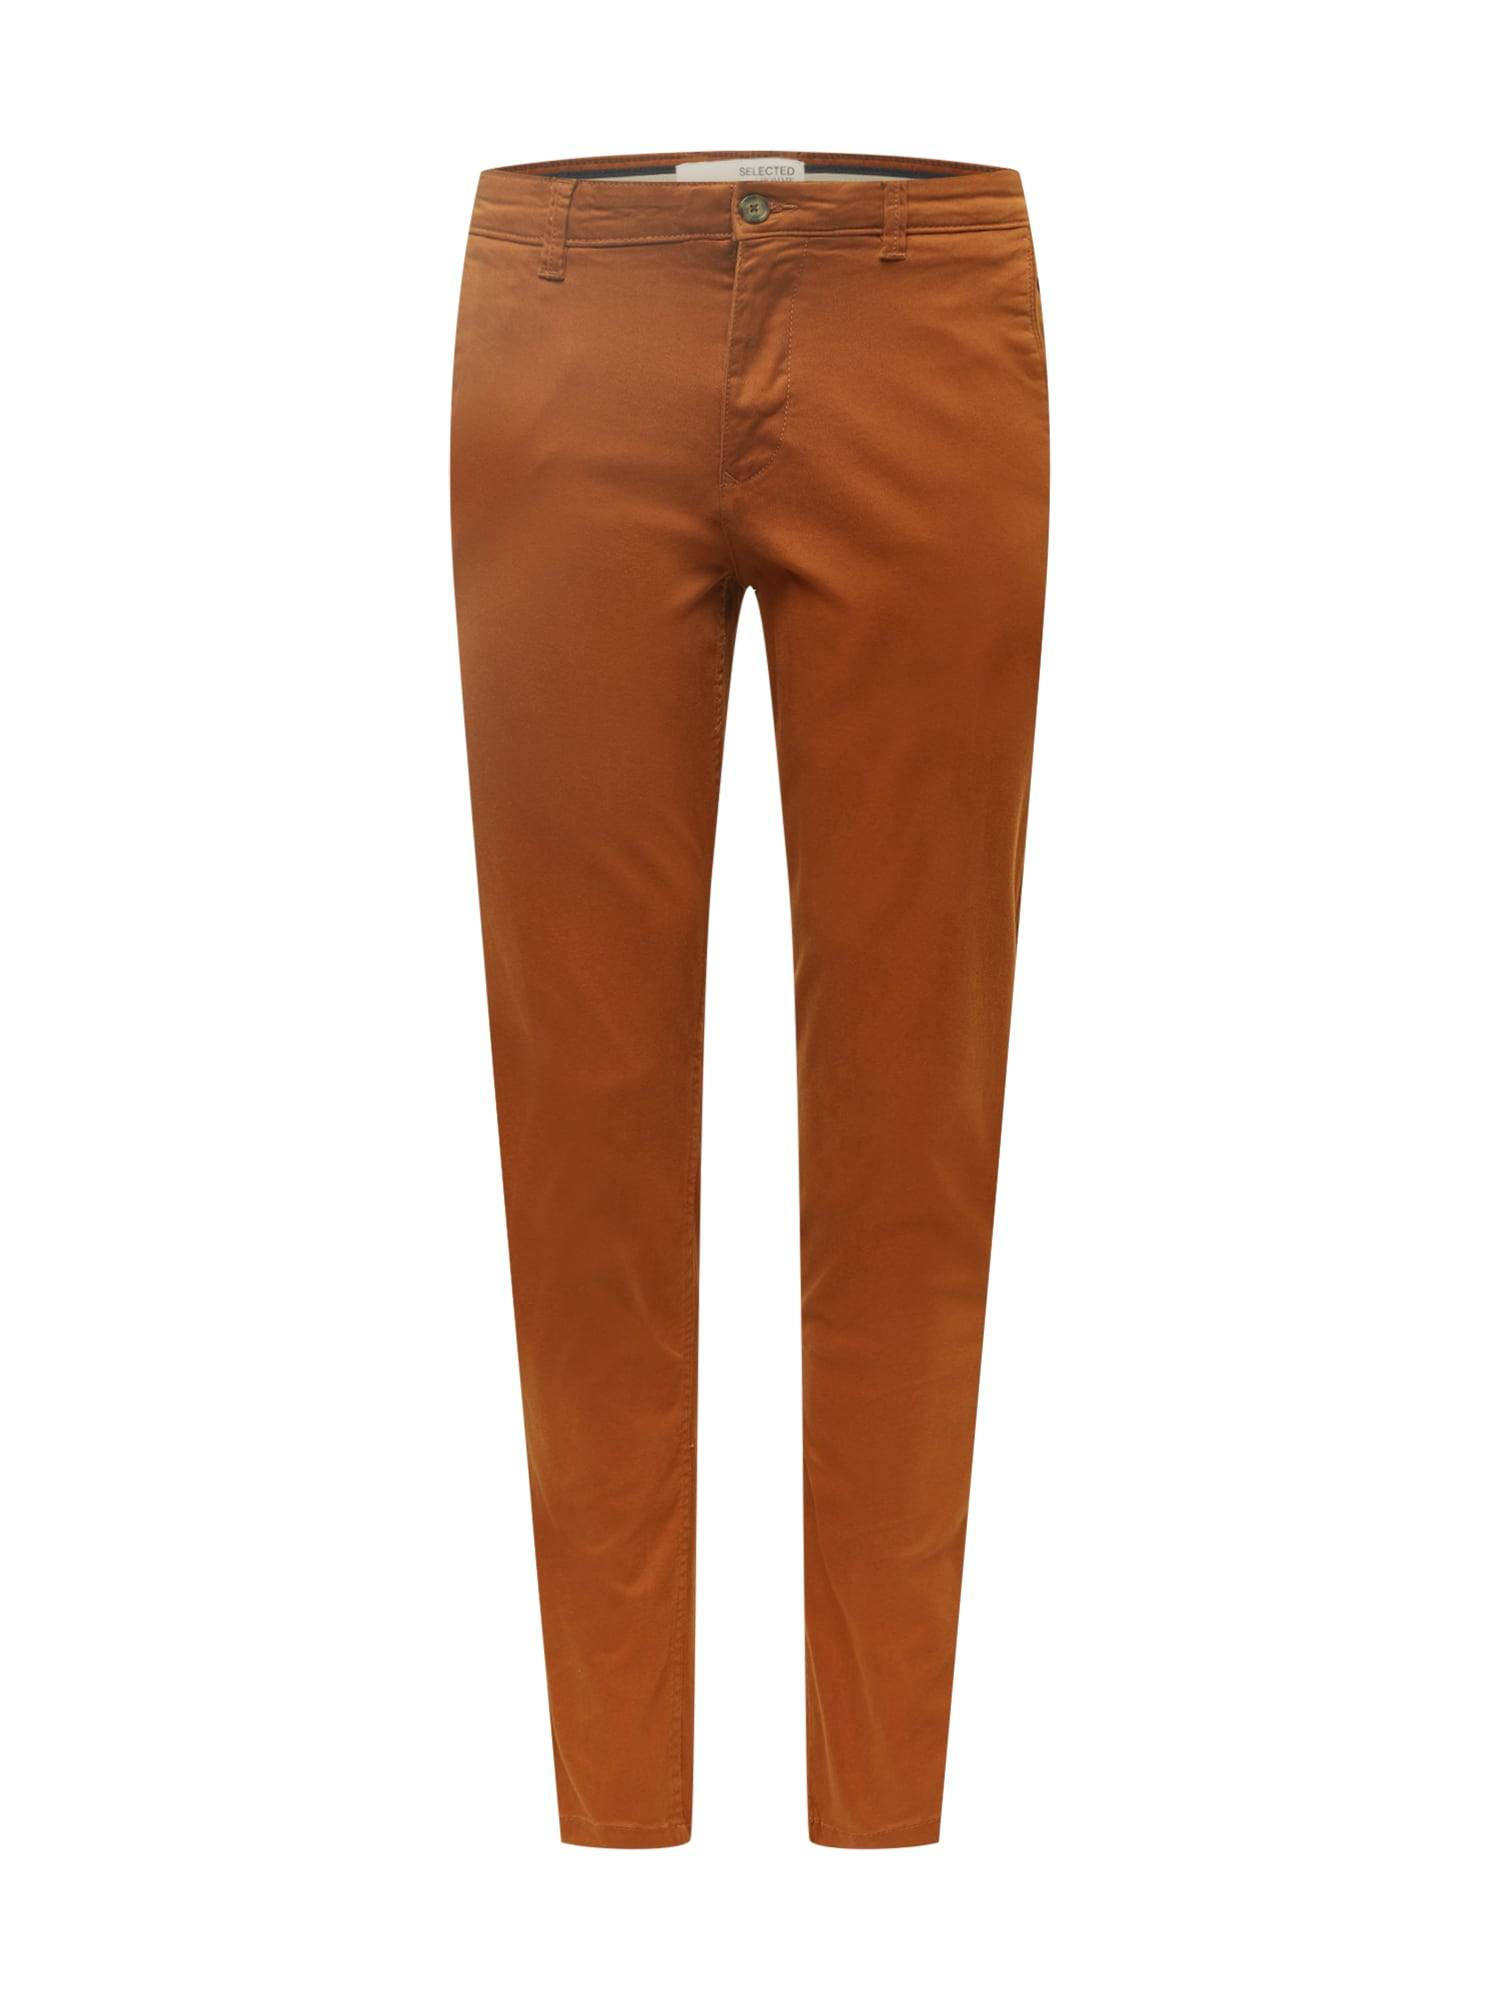 SELECTED HOMME Pantalon chino 'New Paris'  - Marron - Taille: 36 - male